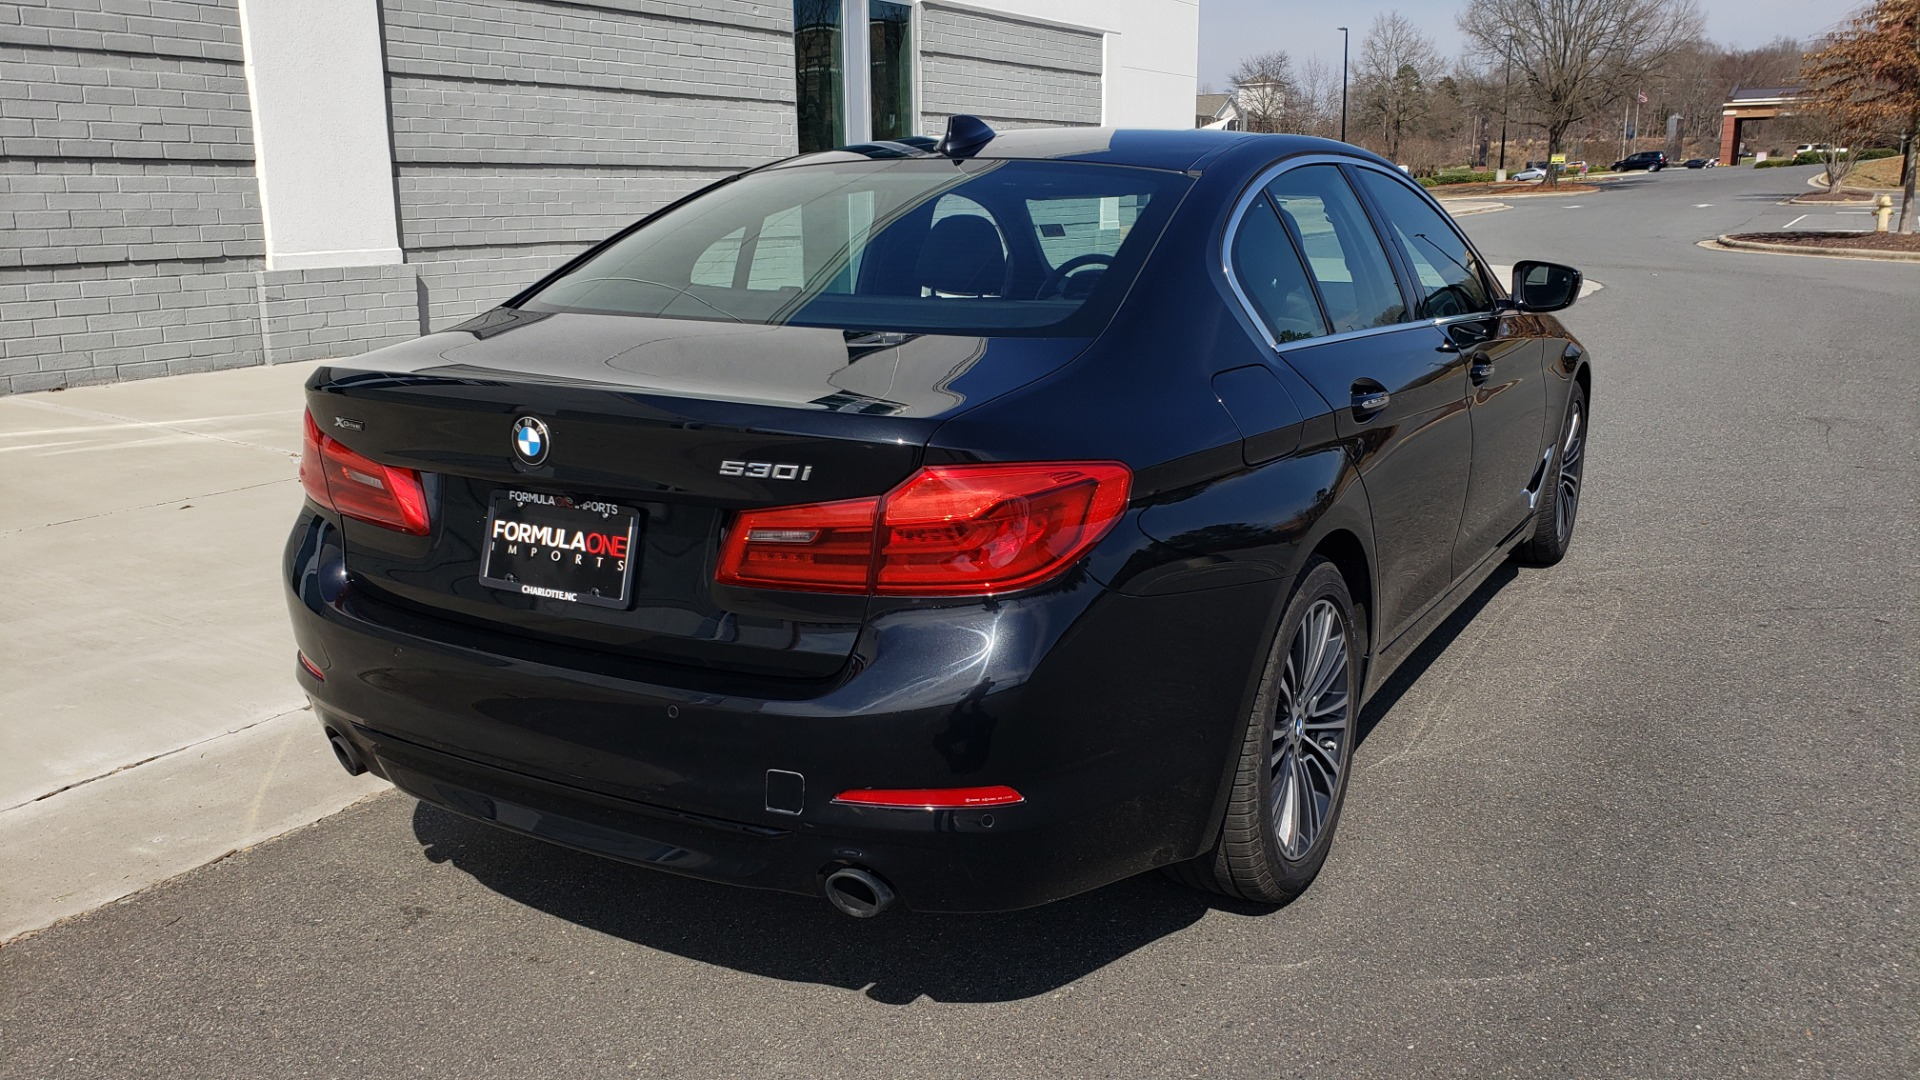 Used 2018 BMW 5 SERIES 530I XDRIVE PREMIUM / NAV / SUNROOF / DRVR ASST / REARVIEW for sale Sold at Formula Imports in Charlotte NC 28227 8